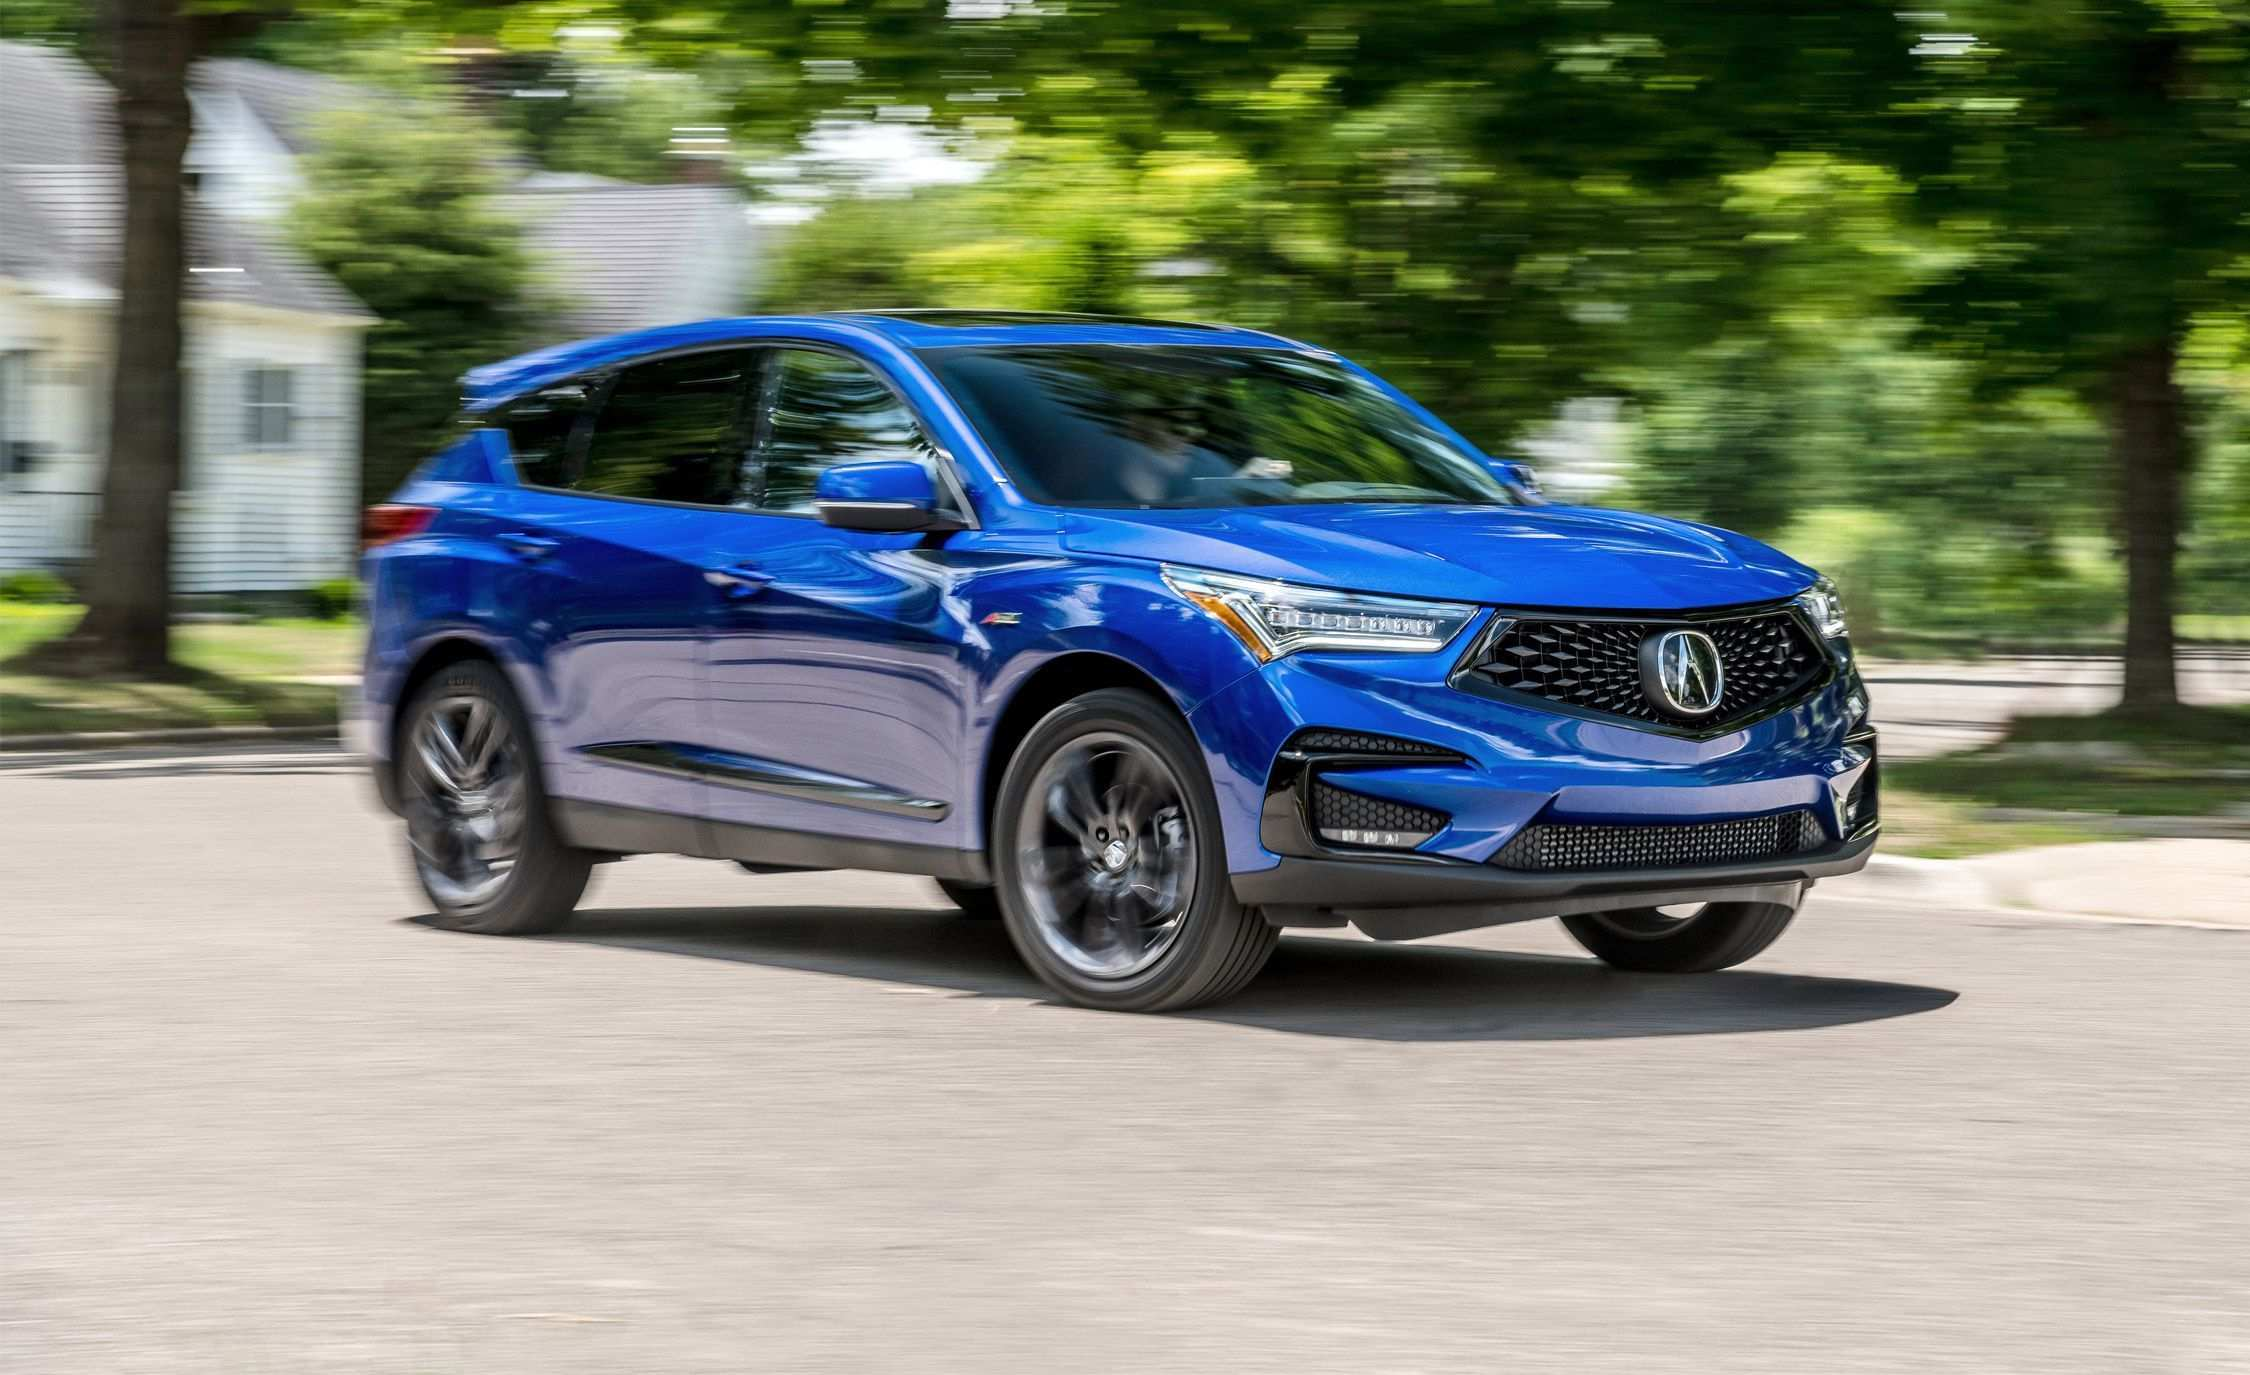 23 Concept of The Acura Rdx 2019 Release Date Usa Spy Shoot Overview by The Acura Rdx 2019 Release Date Usa Spy Shoot